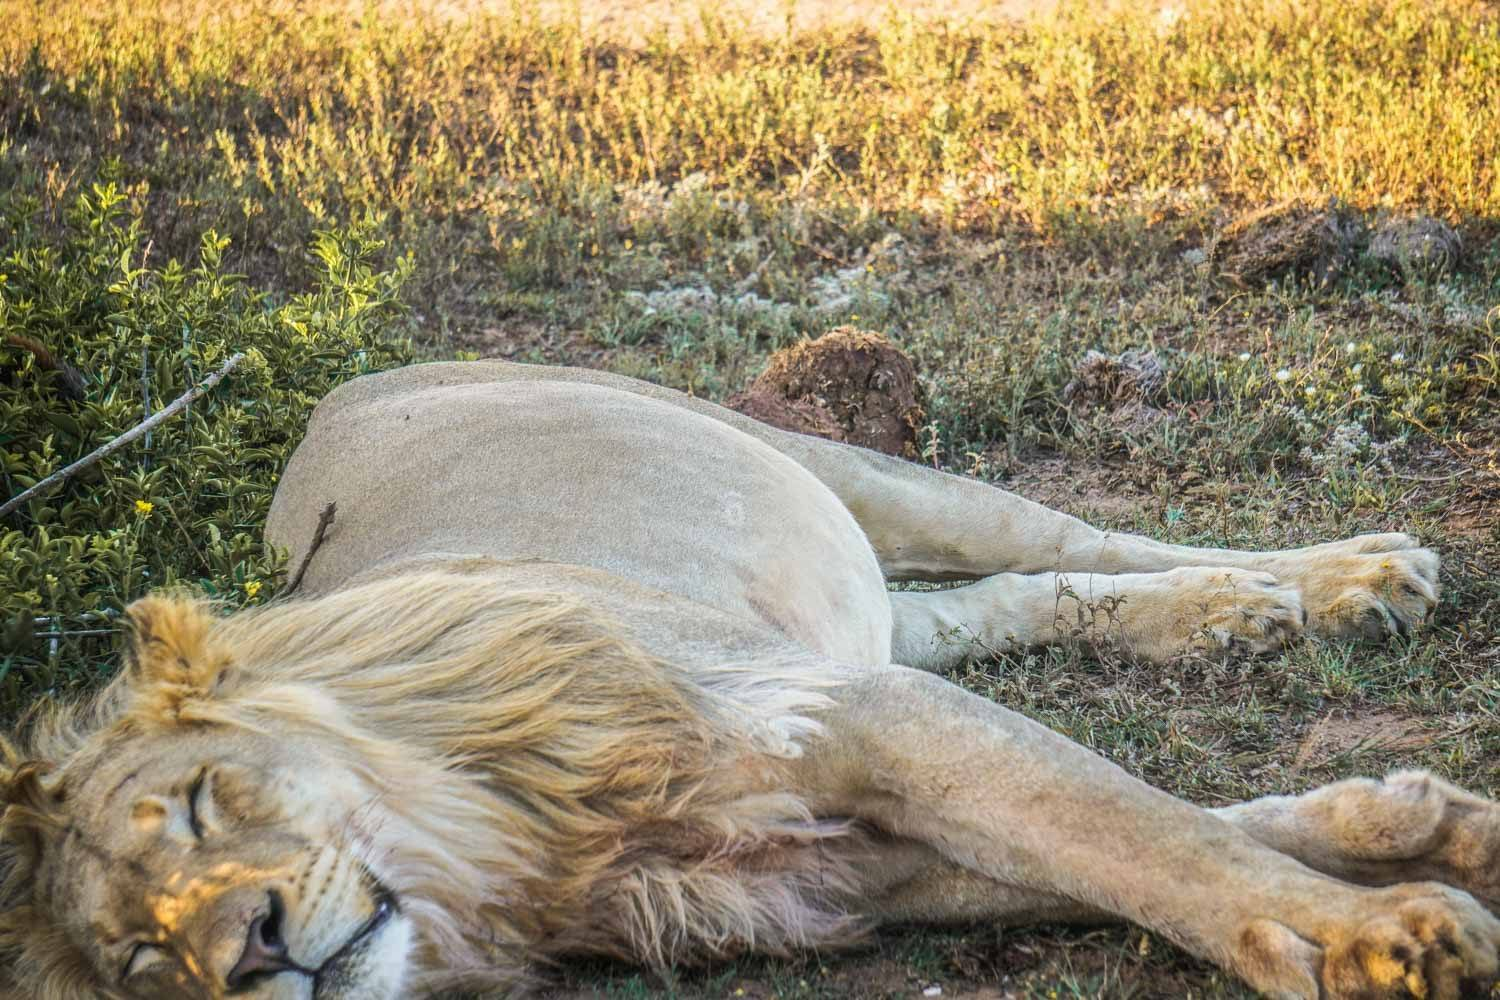 Lion at Rest in Addo Elephant National Park